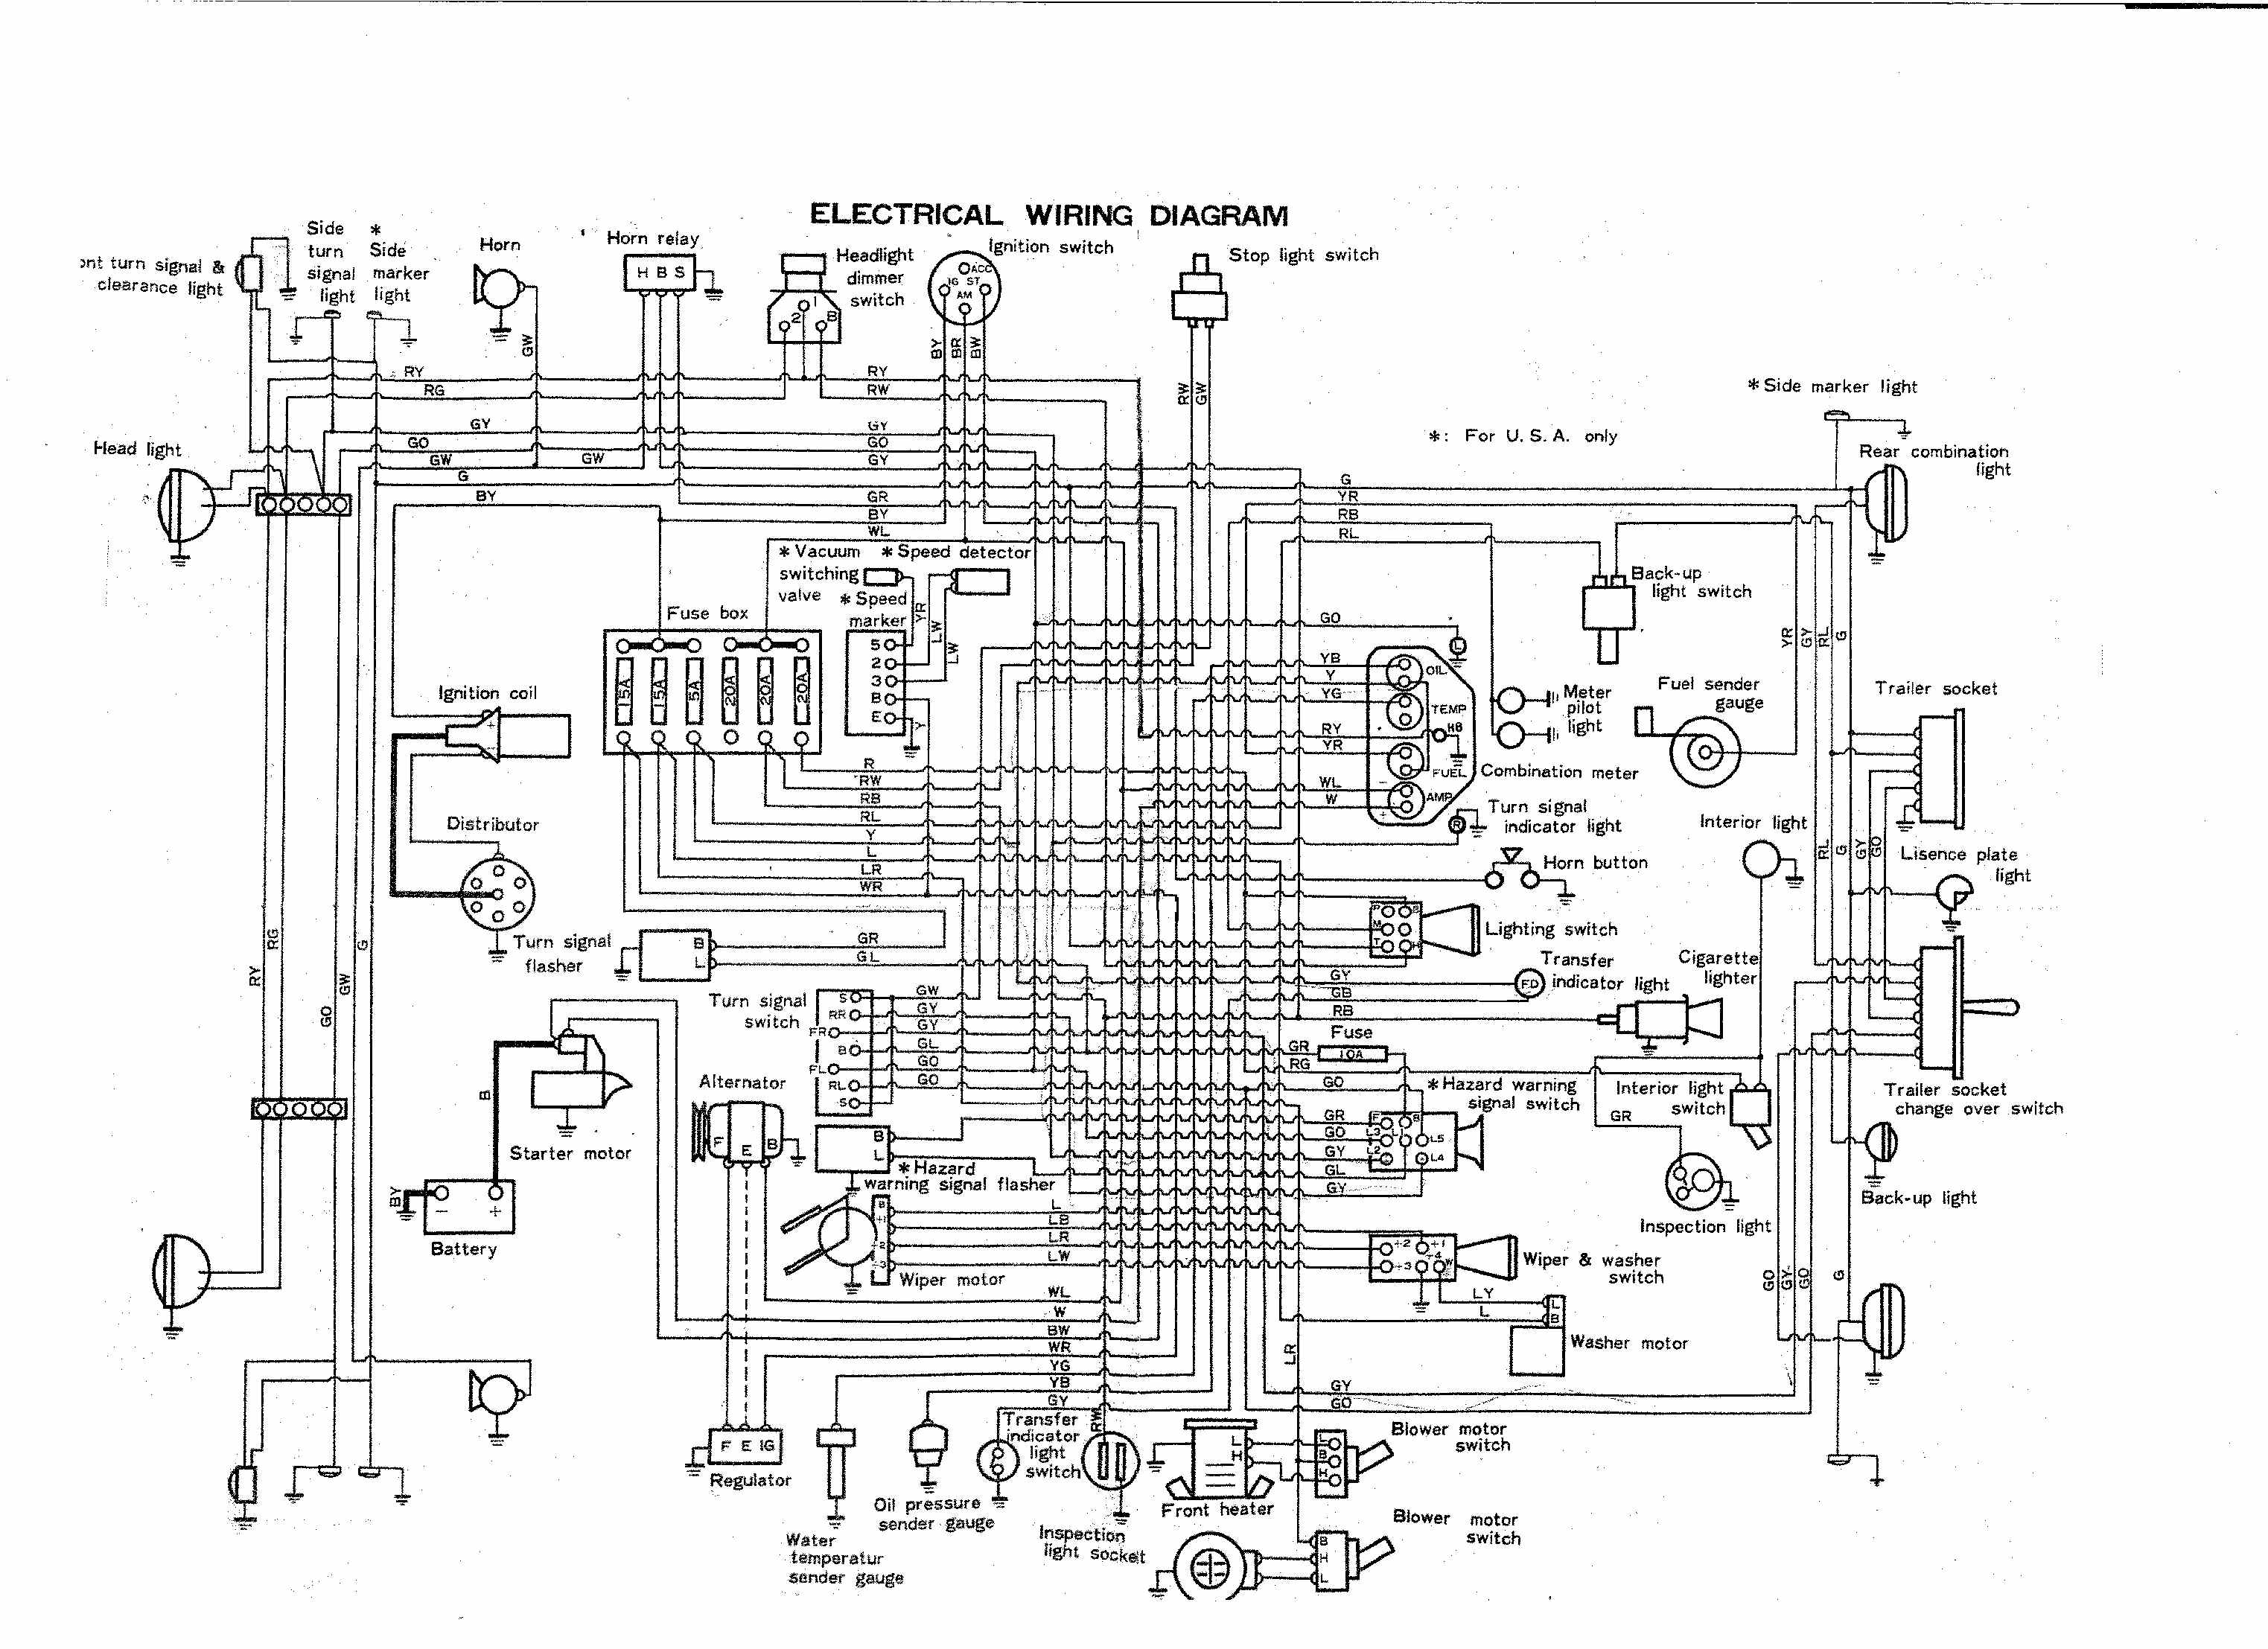 ford alternator wiring diagram download toyota fj40 wiring diagram - somurich.com